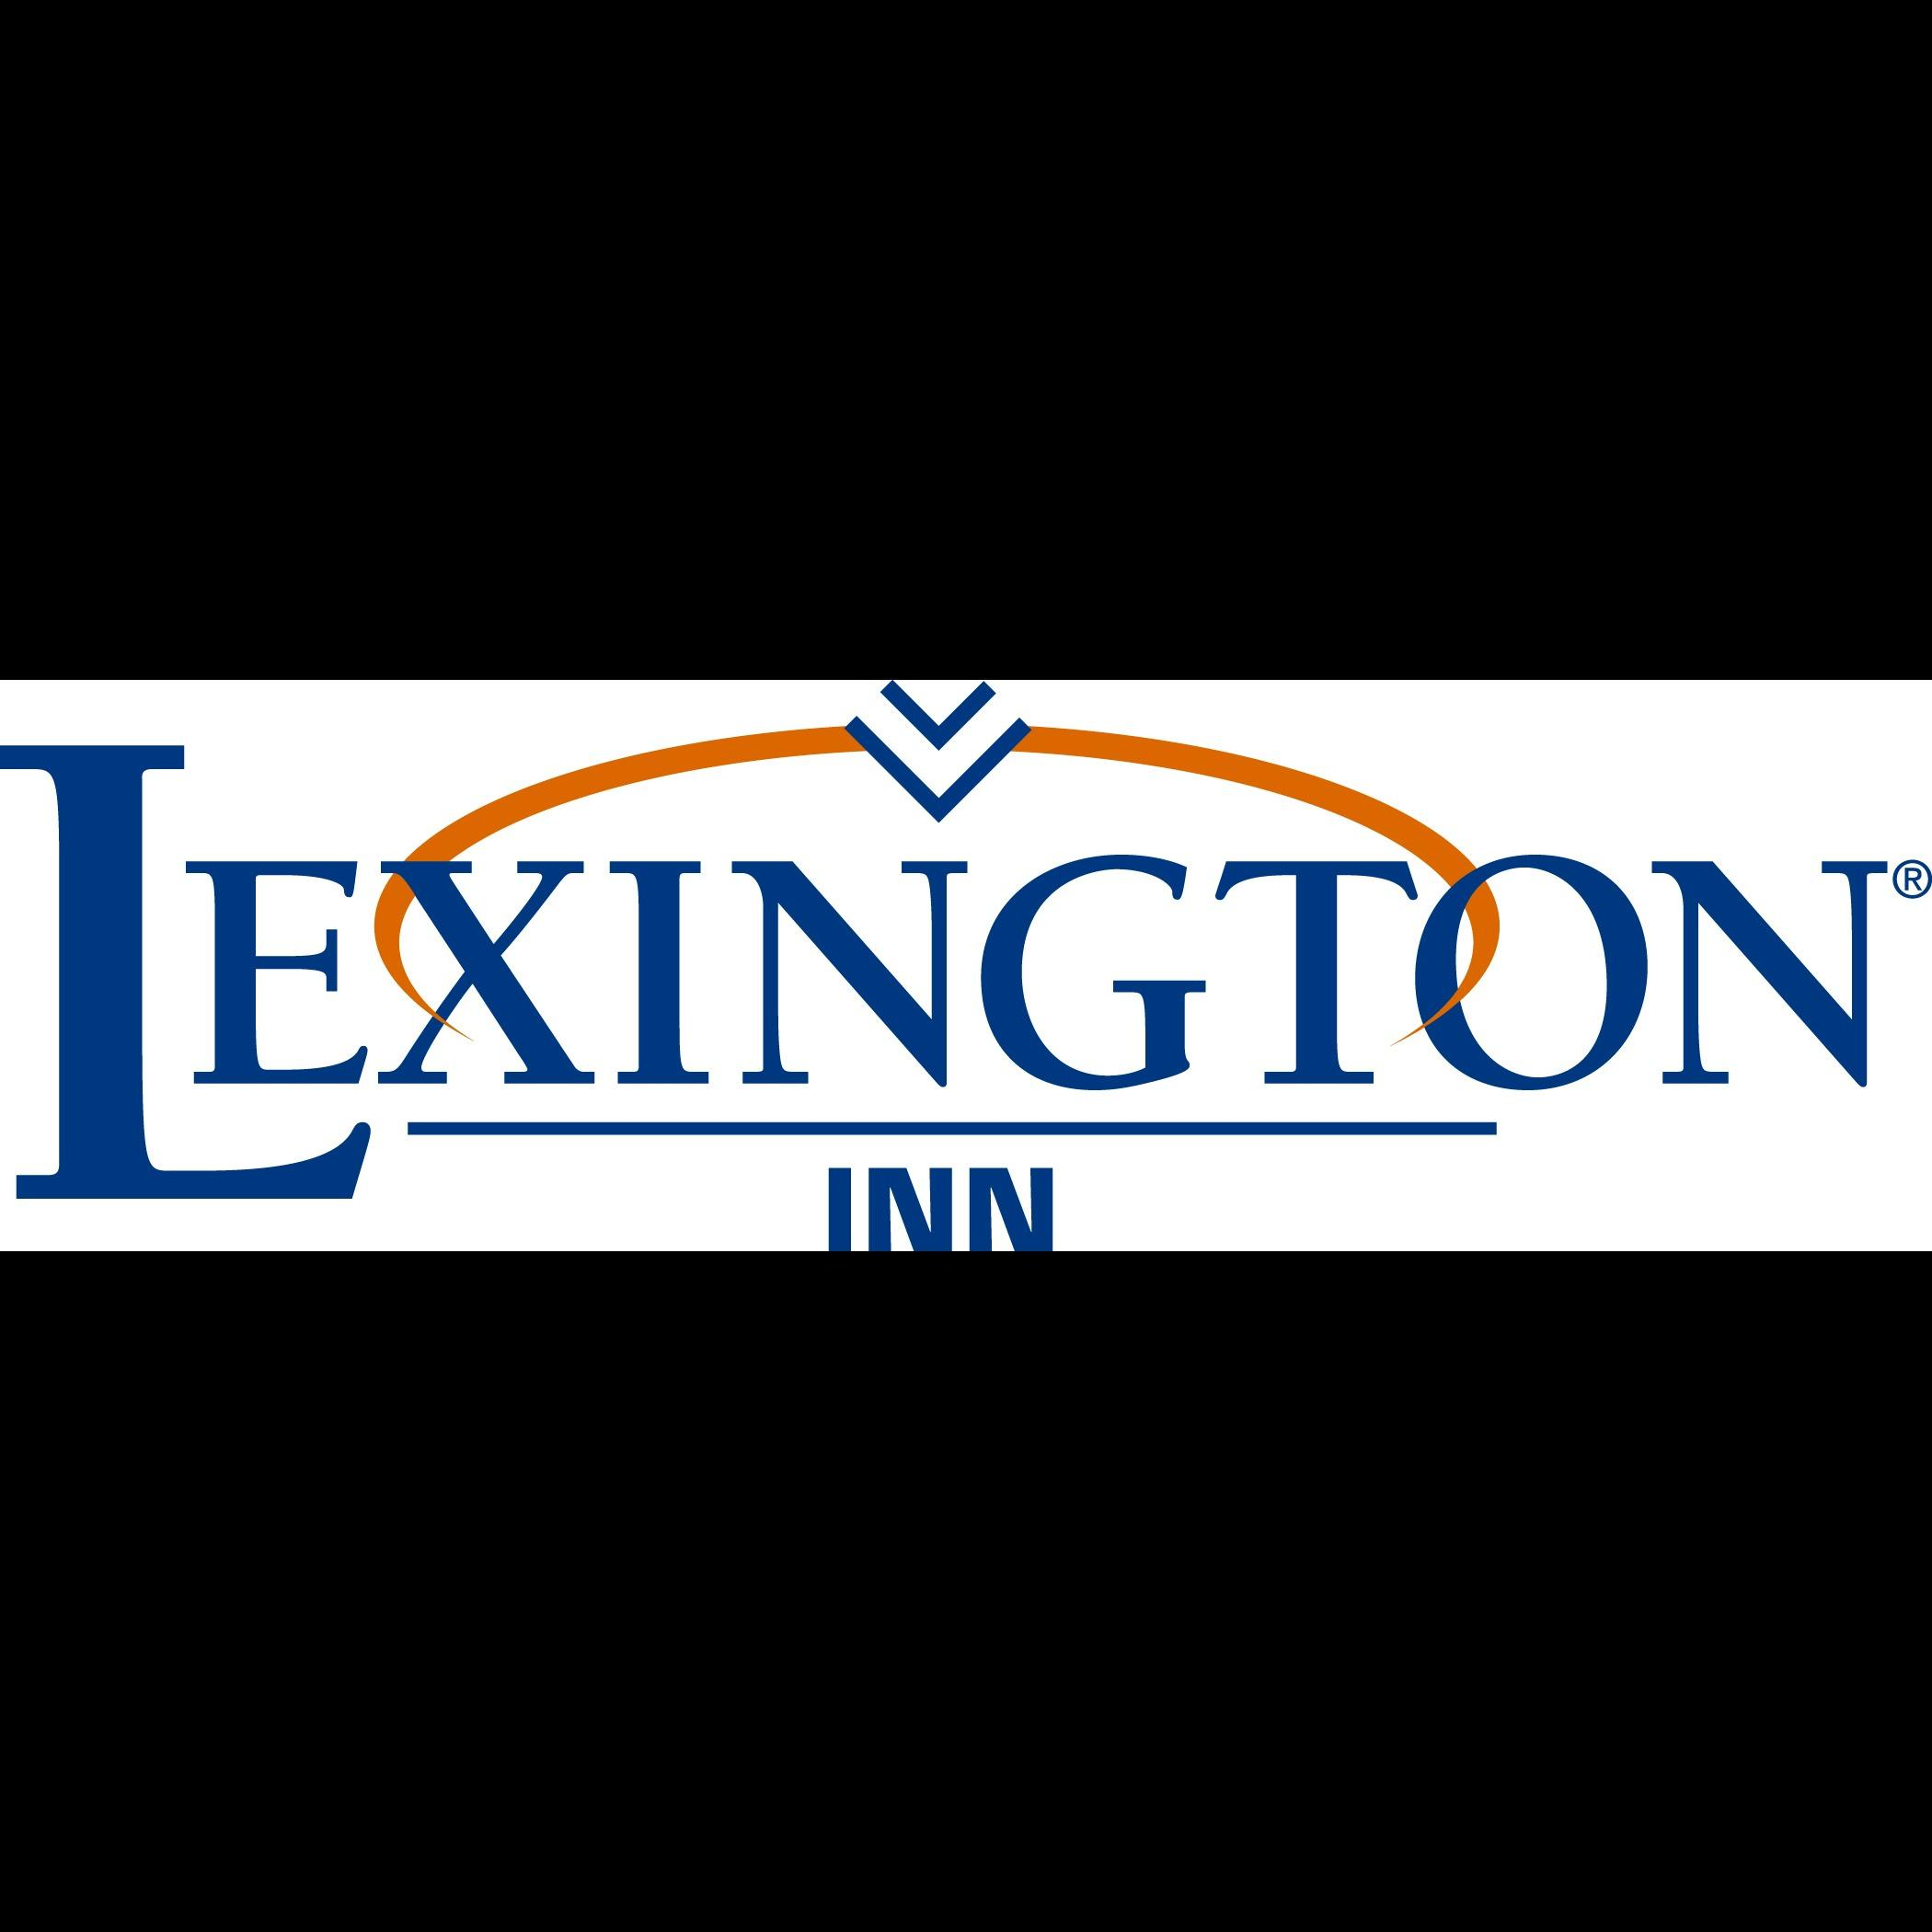 Lexington Inn - Holbrook